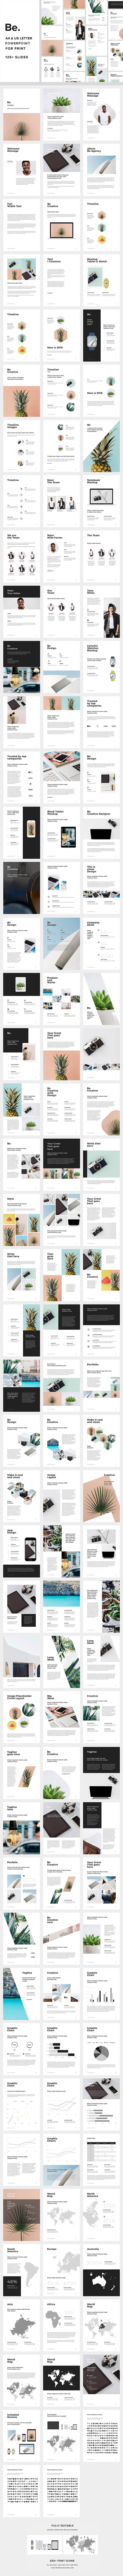 A4 + US Letter Powerpoint Presentation for Print - Creative PowerPoint Templates